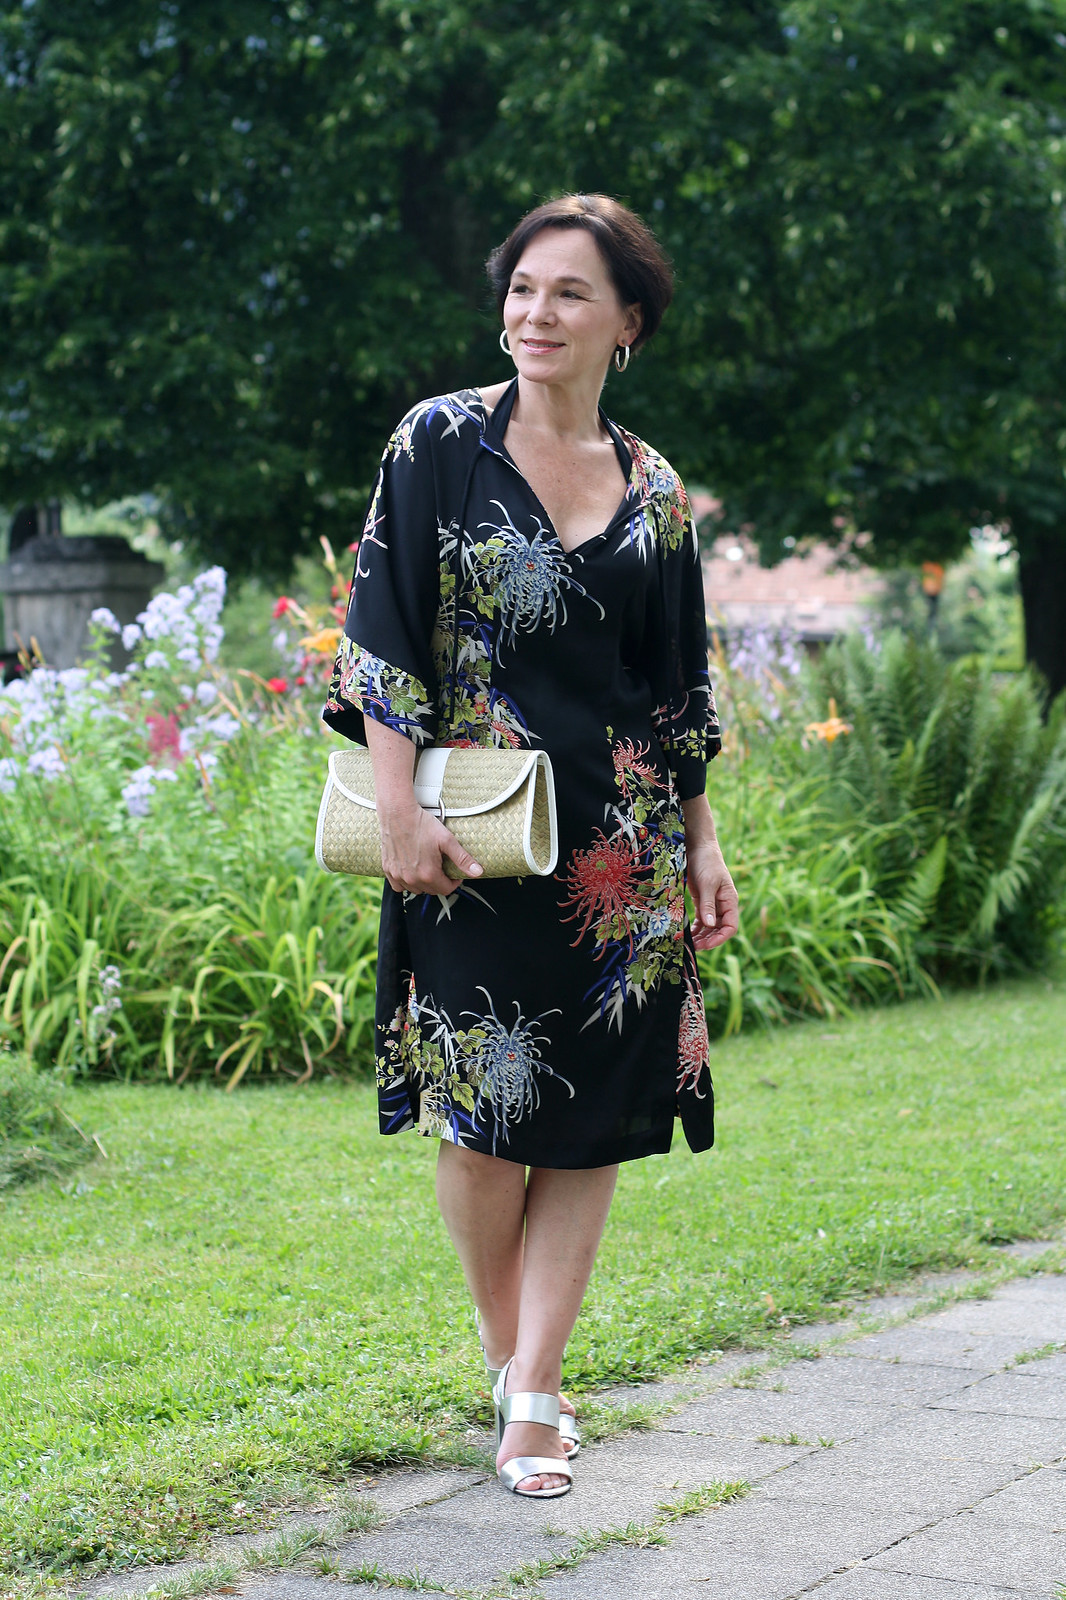 Tropical Flower Summer Dress LadyofStyle